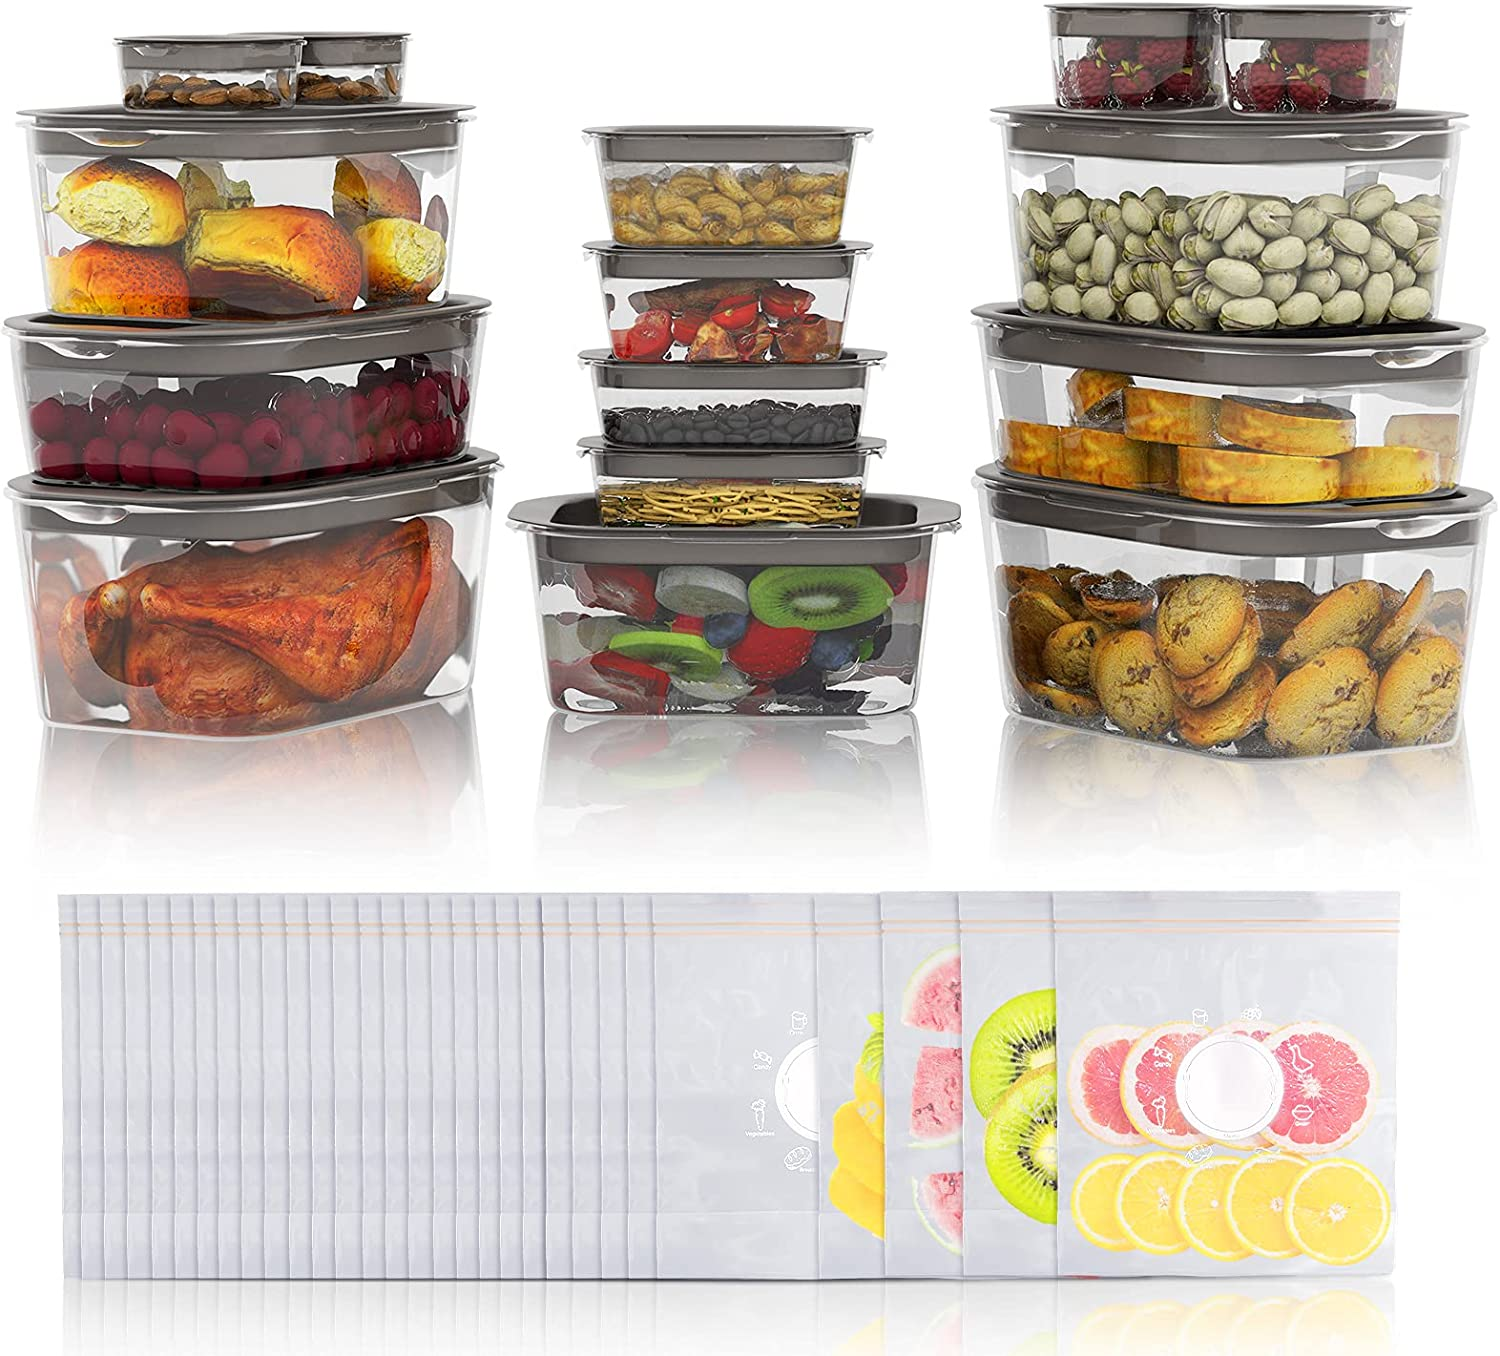 60-Piece Food Storage Containers Set (15 Pack Food Grade Storage Containers with Lids + 30 Pack Reusable Food Storage Bags), BPA Free Food Storage Boxes for Fridge, Microwave/Dishwasher/Freezer Safe